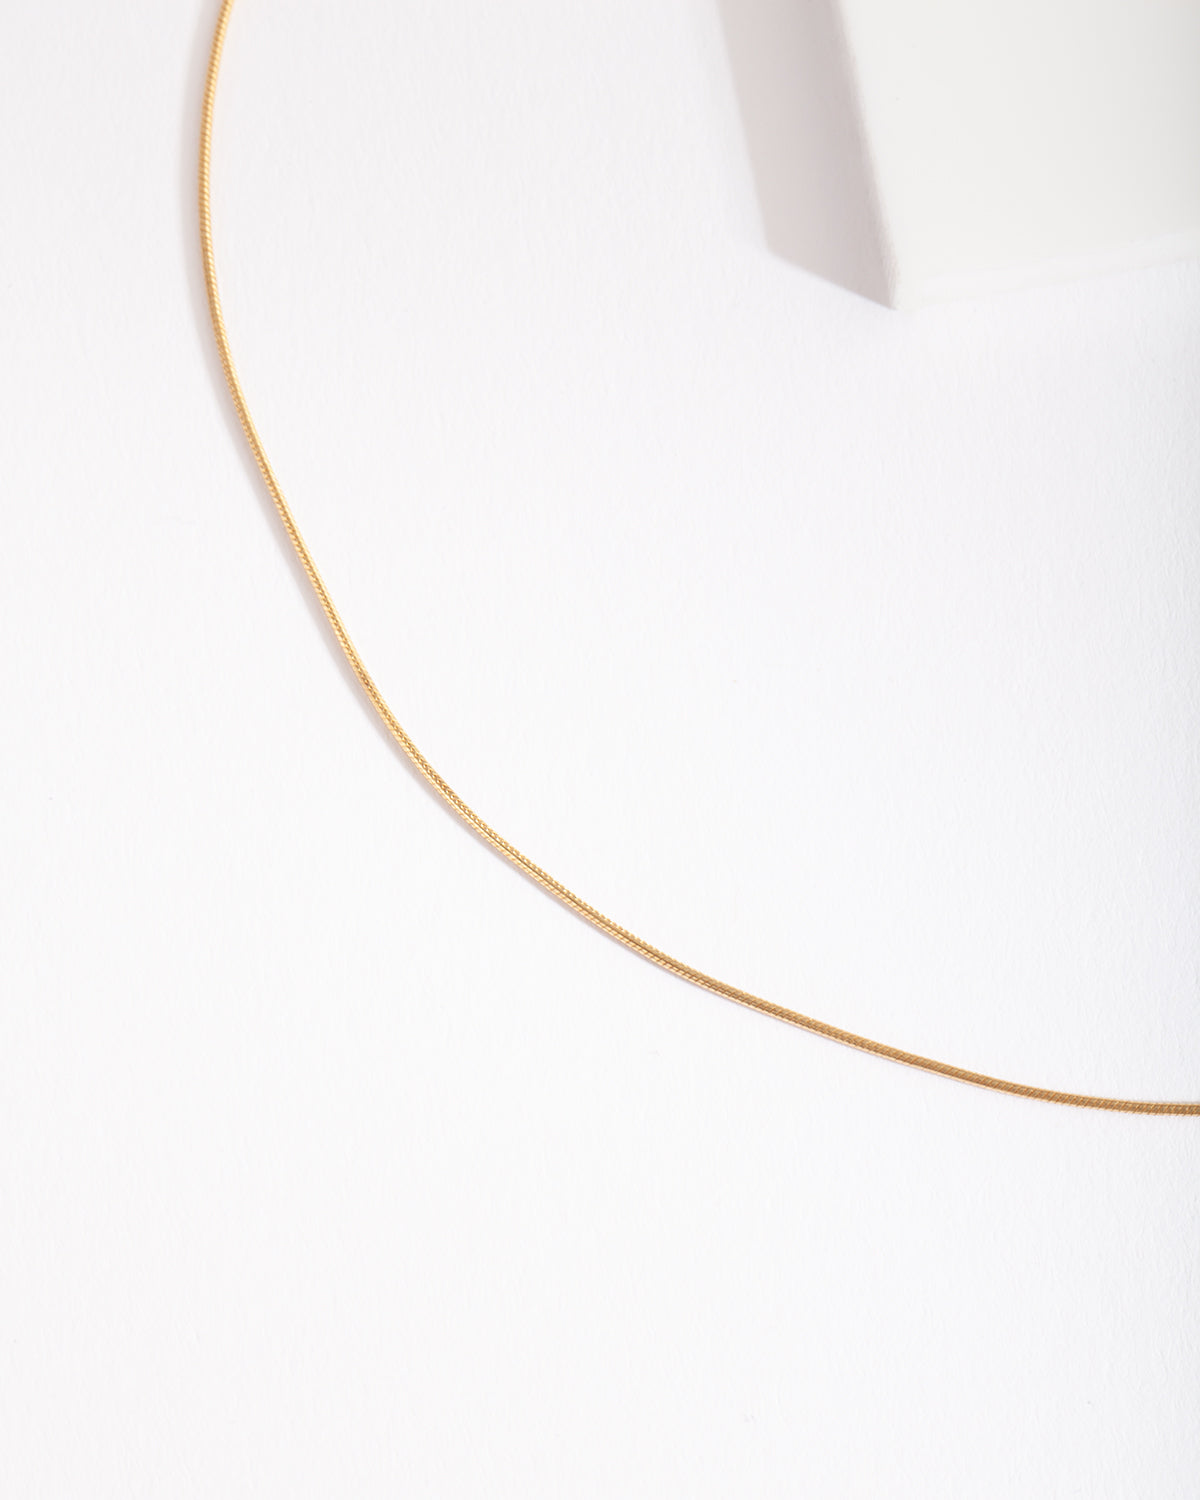 Gold Plated Sterling Silver Snake Chain Choker Necklace